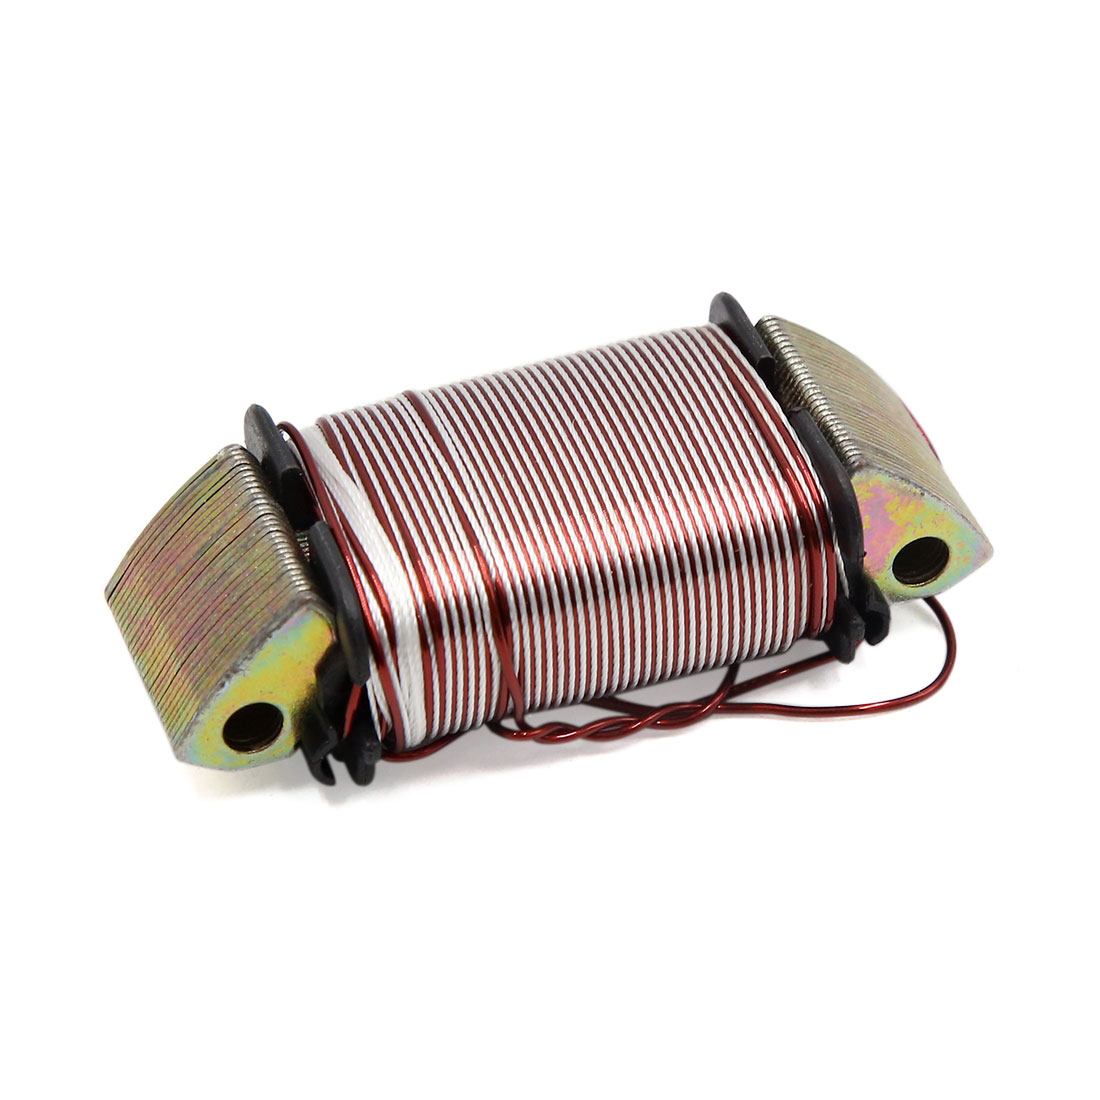 DC 12V Metal Scooter Motorbike Motorcycle Stator Lighting Coil for JH70 JH100